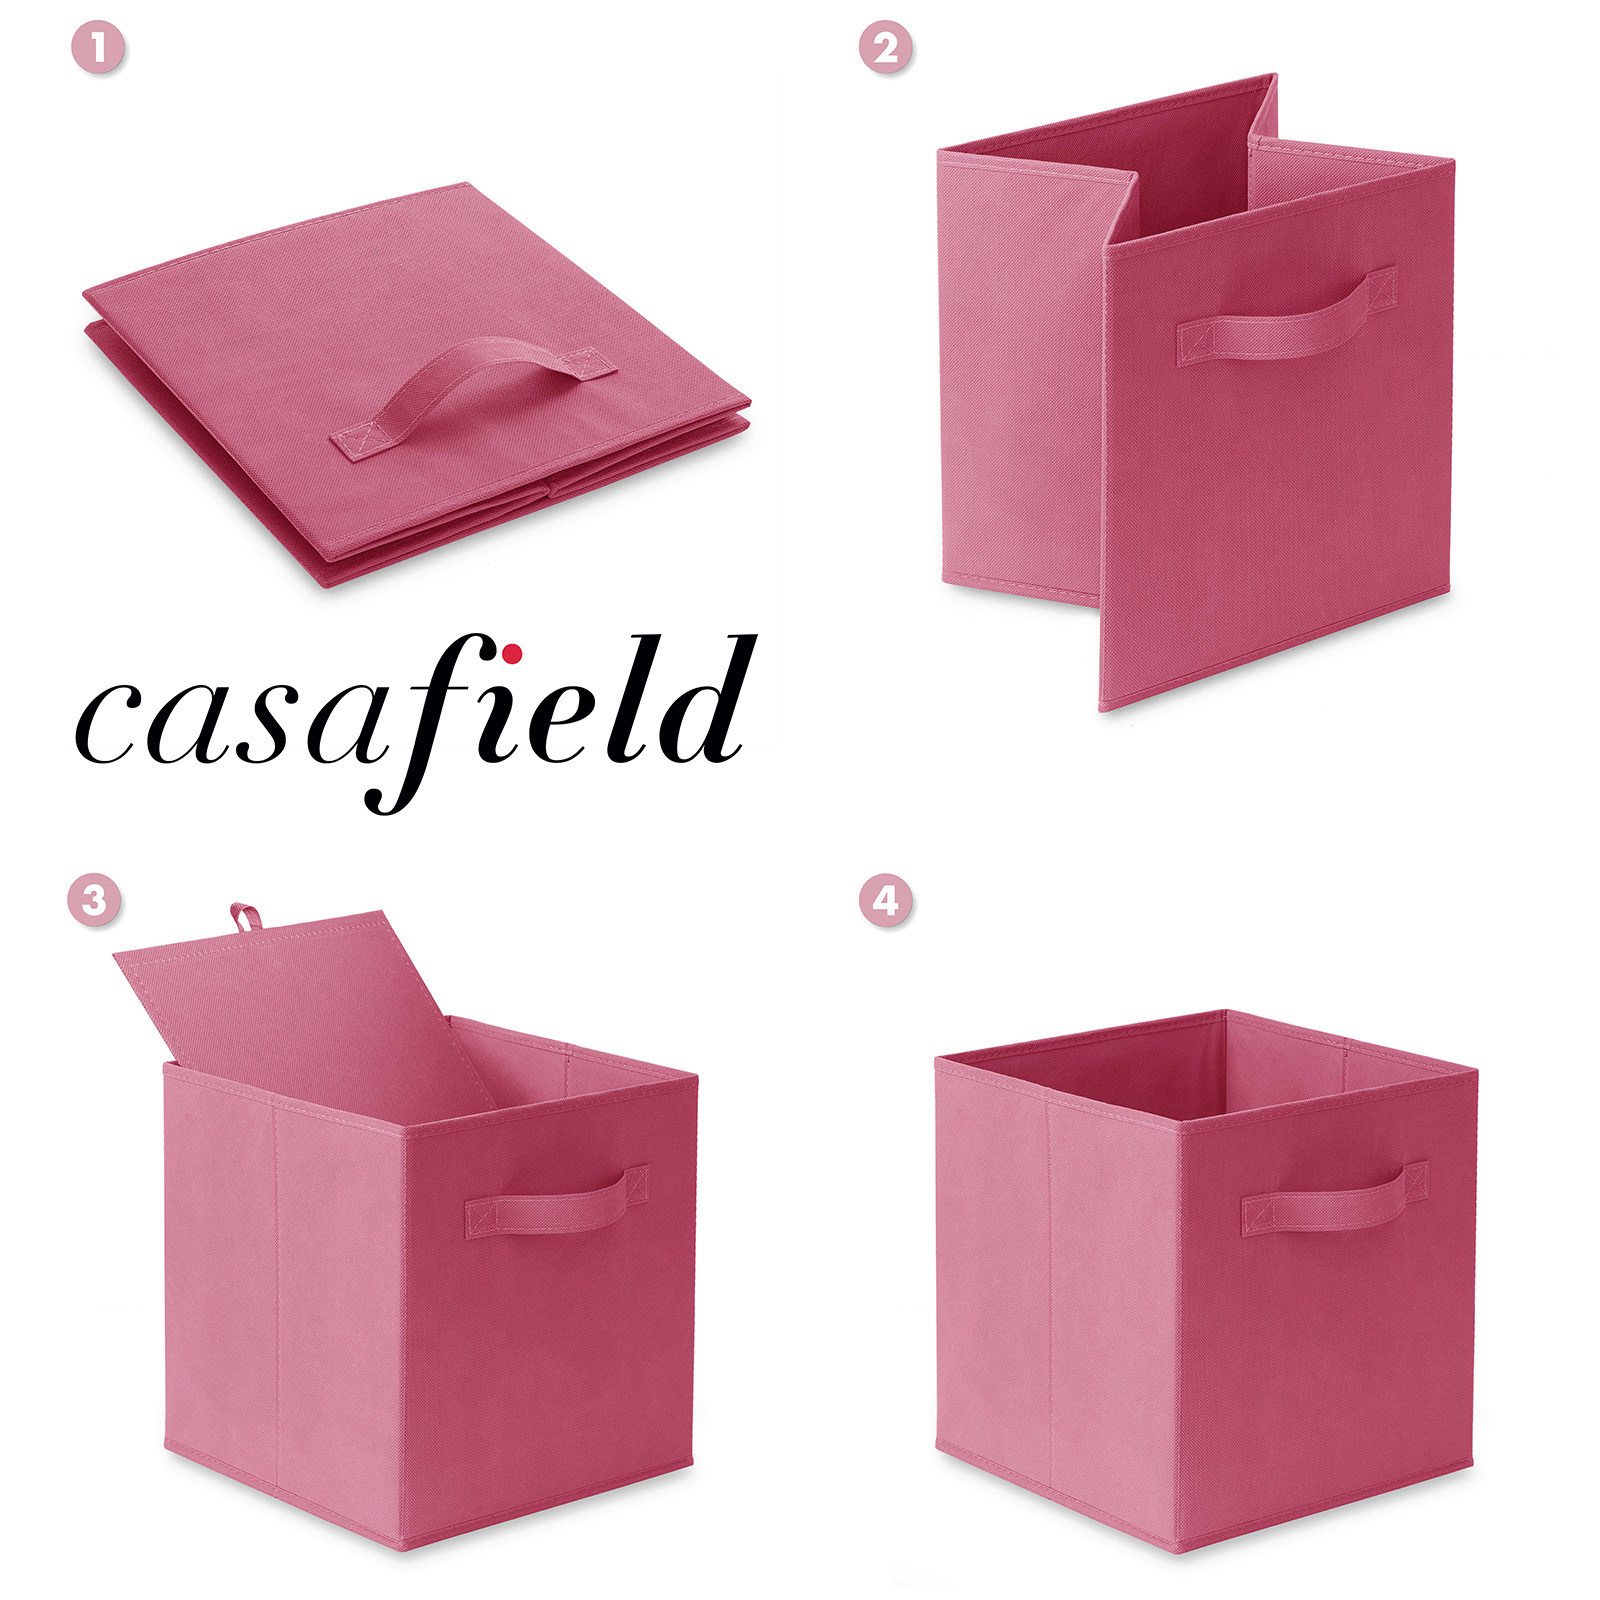 6-Collapsible-Foldable-Cloth-Fabric-Cubby-Cube-Storage-Bins-Baskets-for-Shelves thumbnail 32